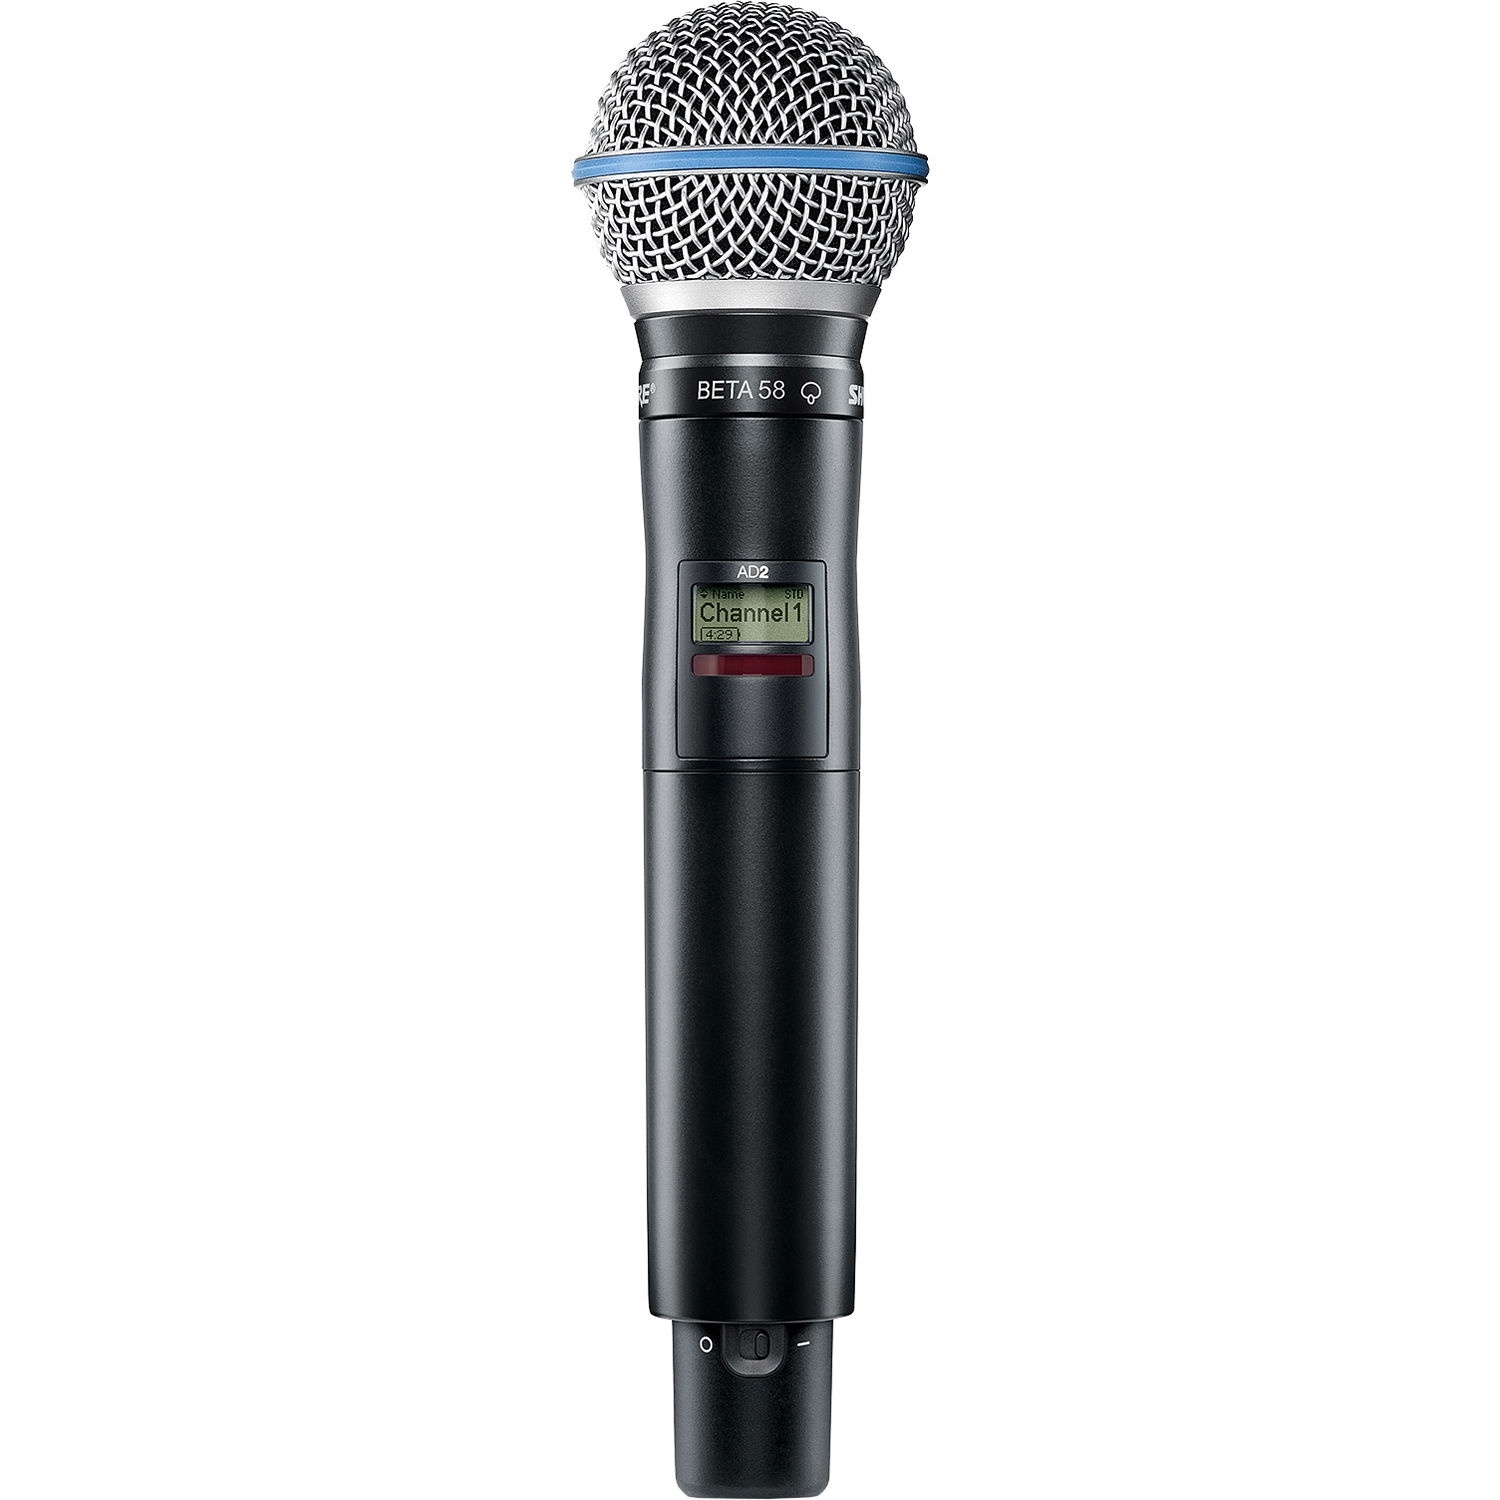 Shure AD2/B58 Digital Handheld Wireless Microphone Transmitter with Beta 58A Capsule